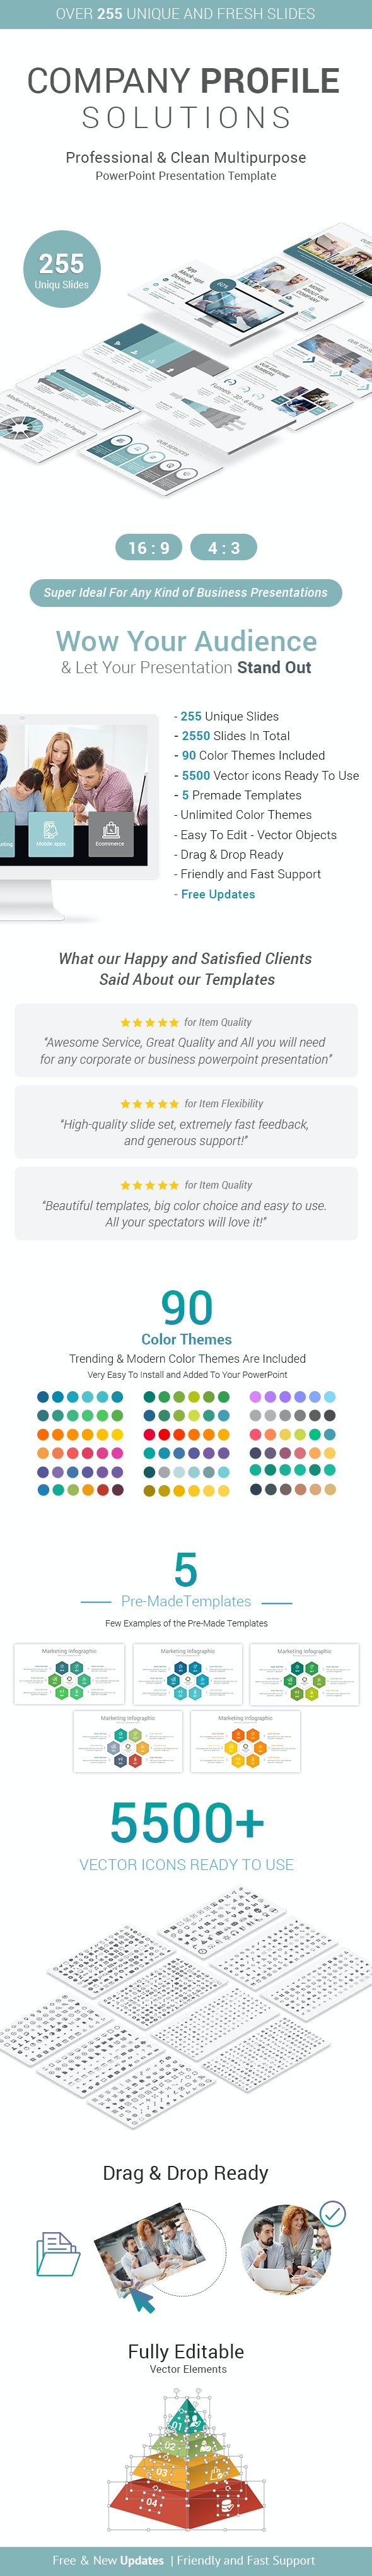 Stunning Company Profile PowerPoint Presentation Template - Business PowerPoint Templates